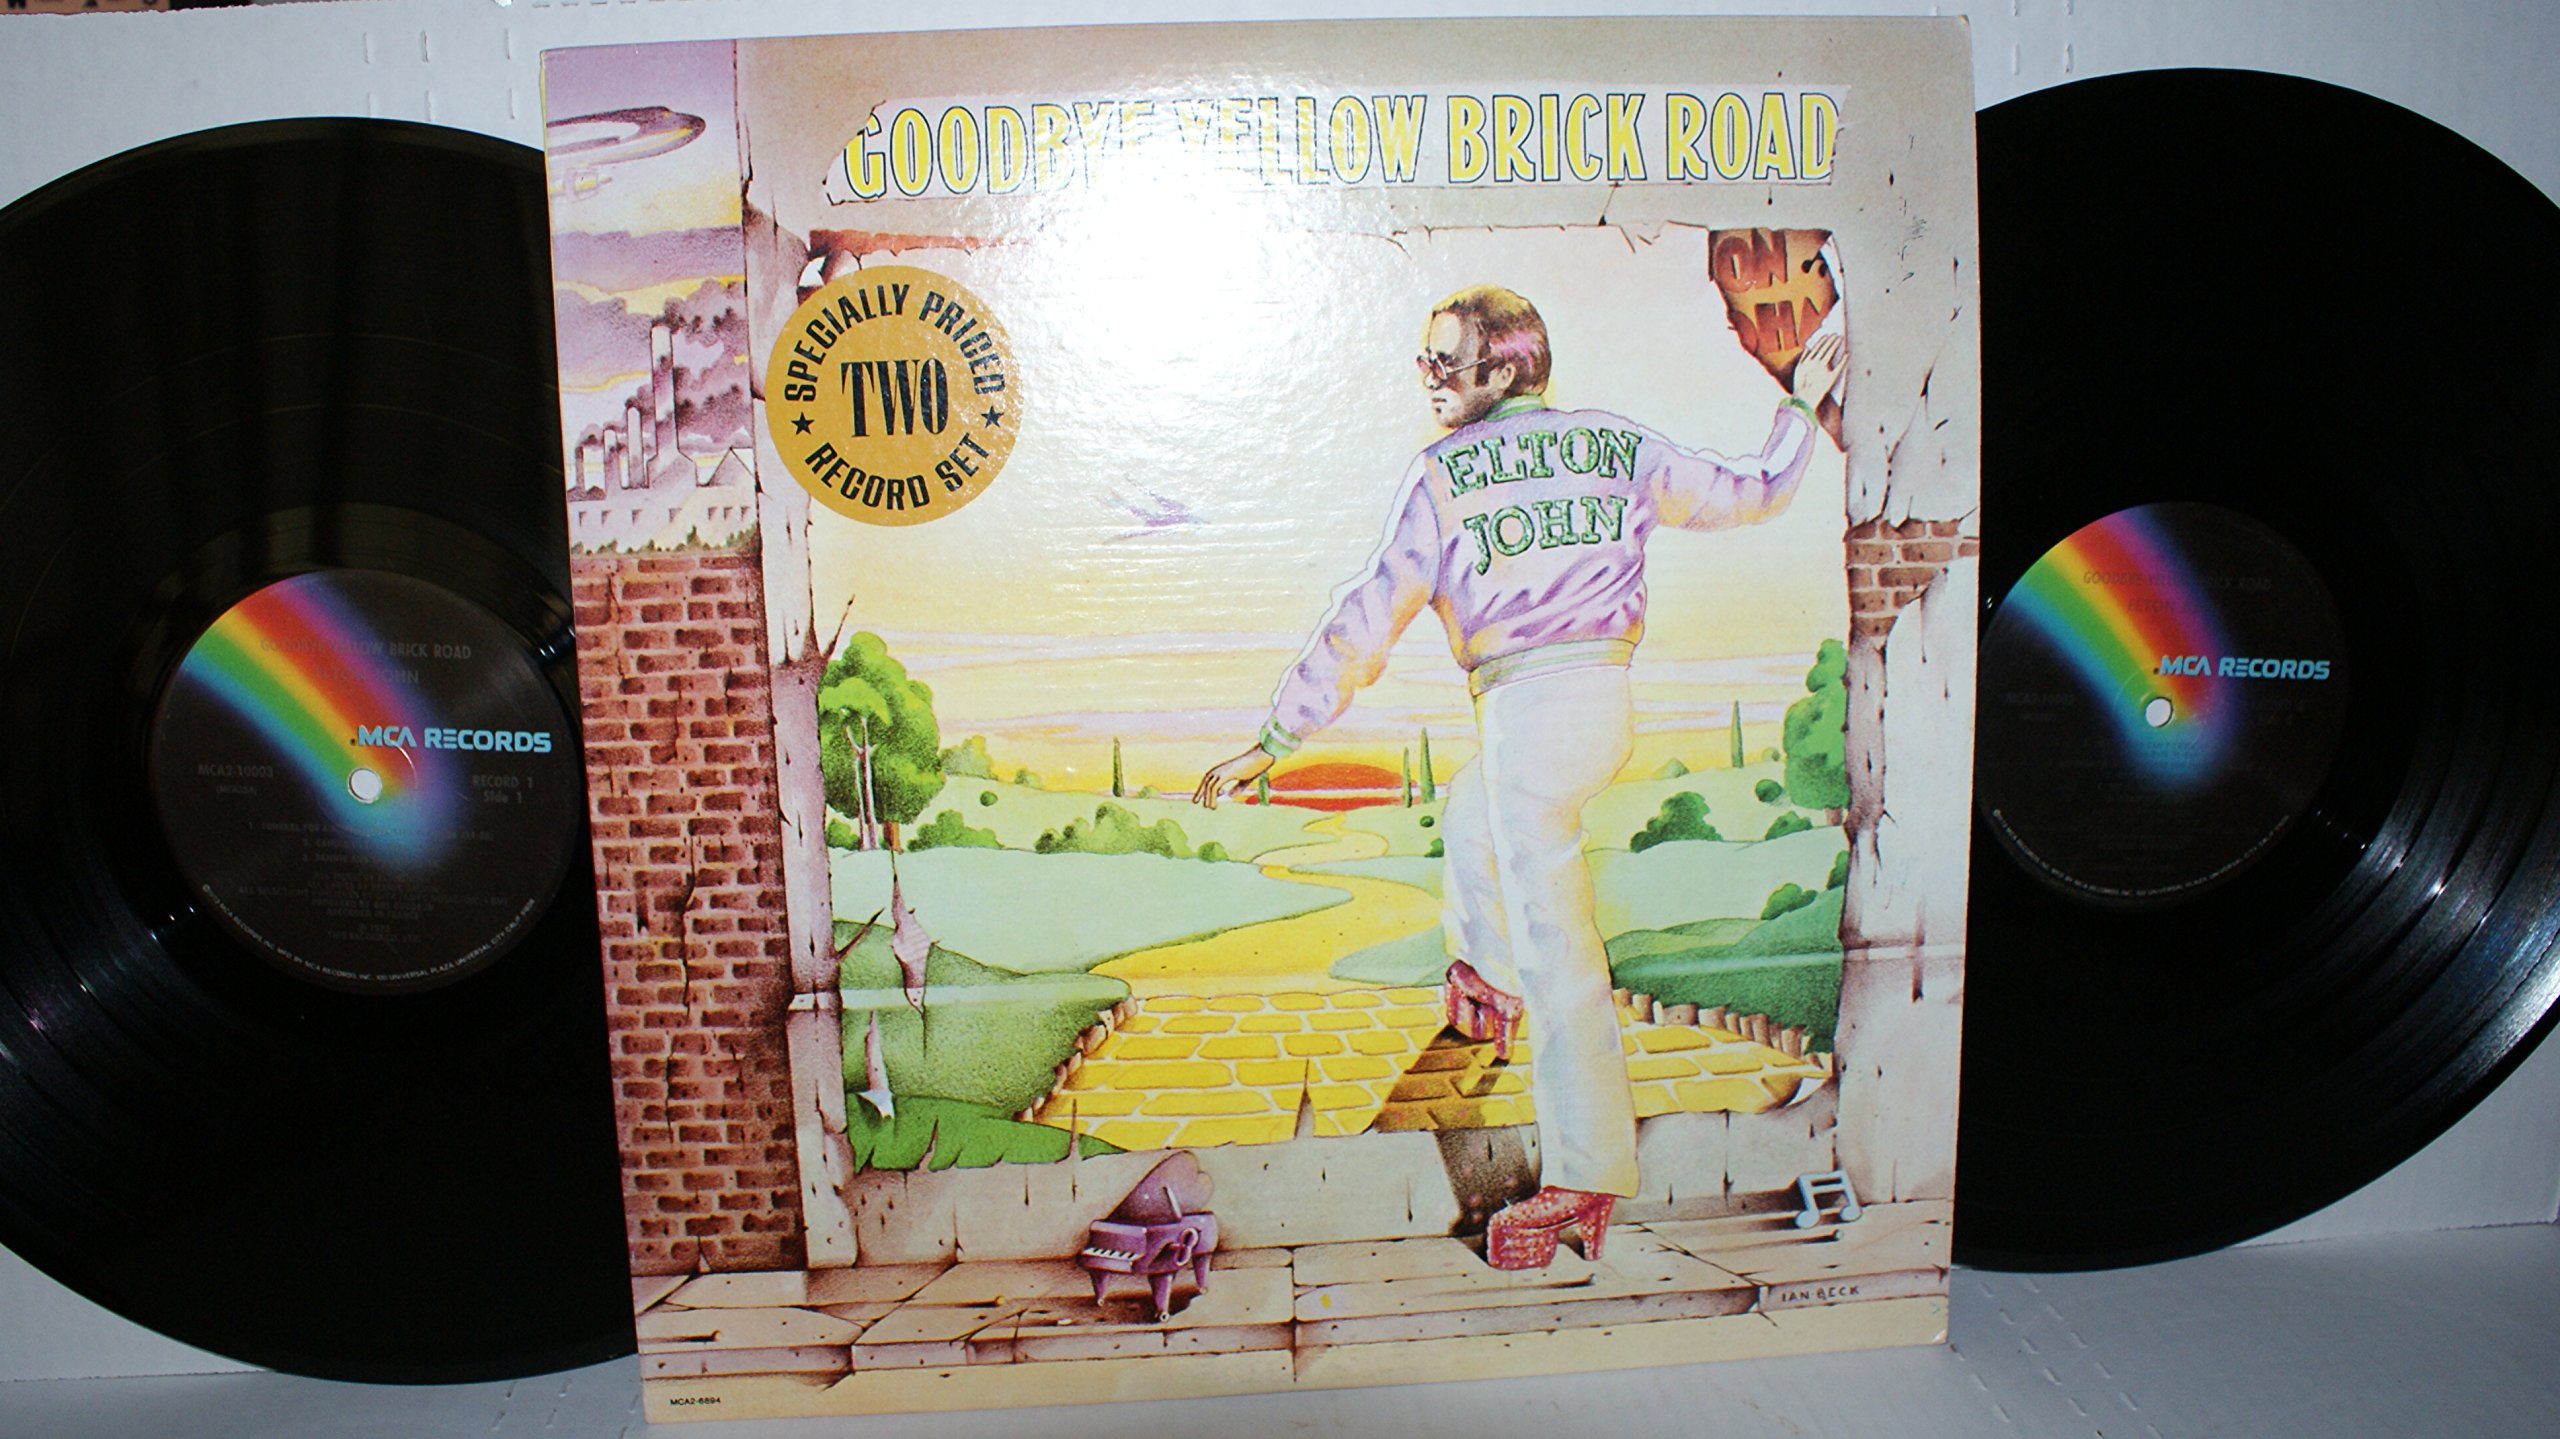 Goodbye Yellow Brick Road [Vinyl] by Mca